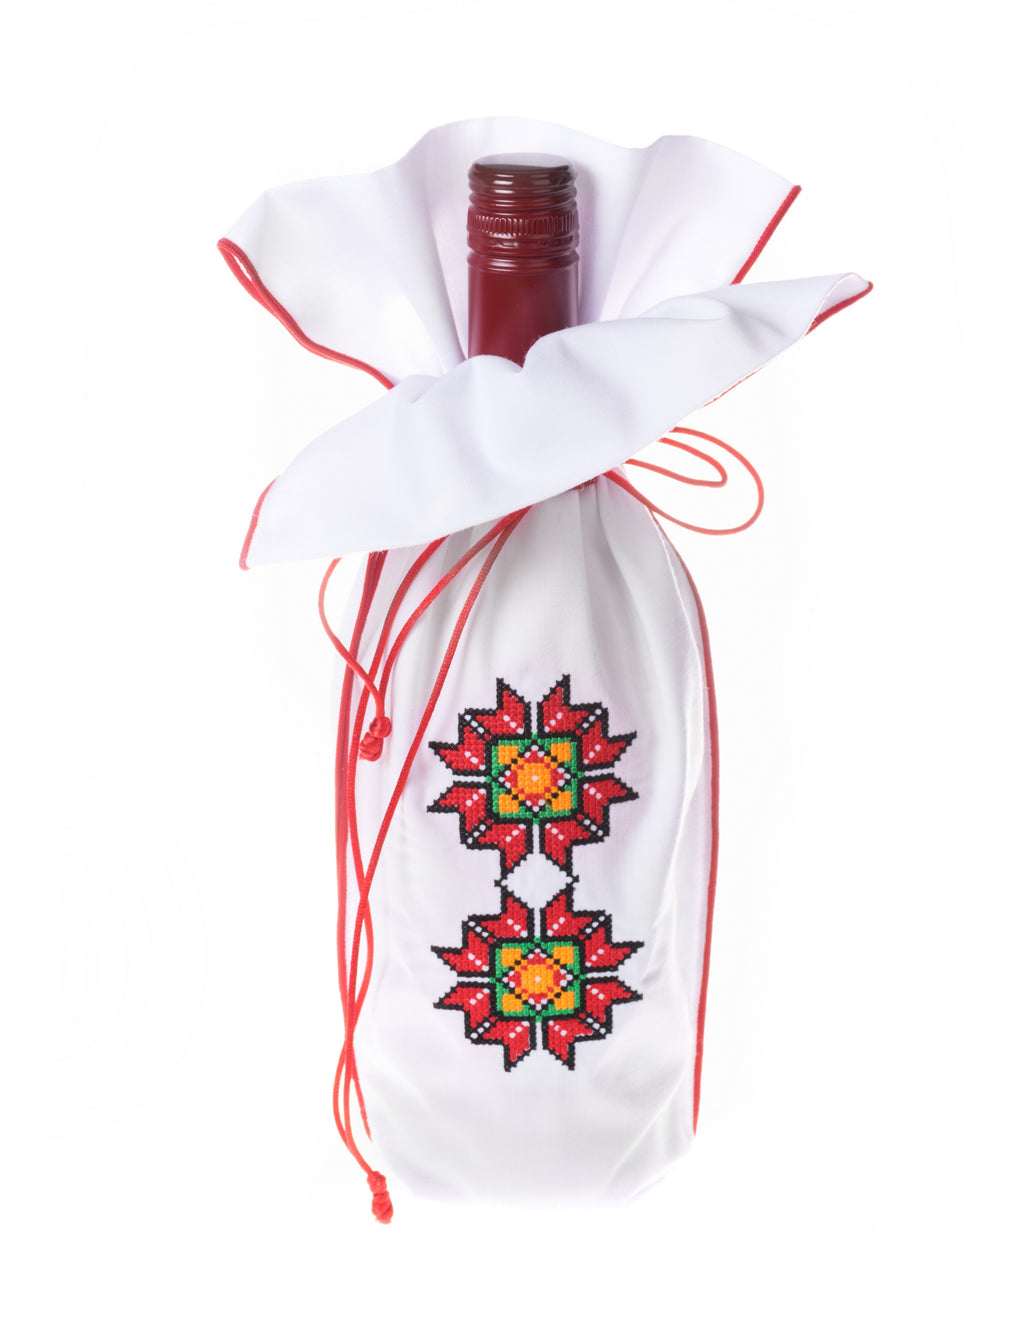 A uniquely embroidered flower design highlights the front of this Christmas wine gift bag.   Place your favorite wine inside and present to a friend.